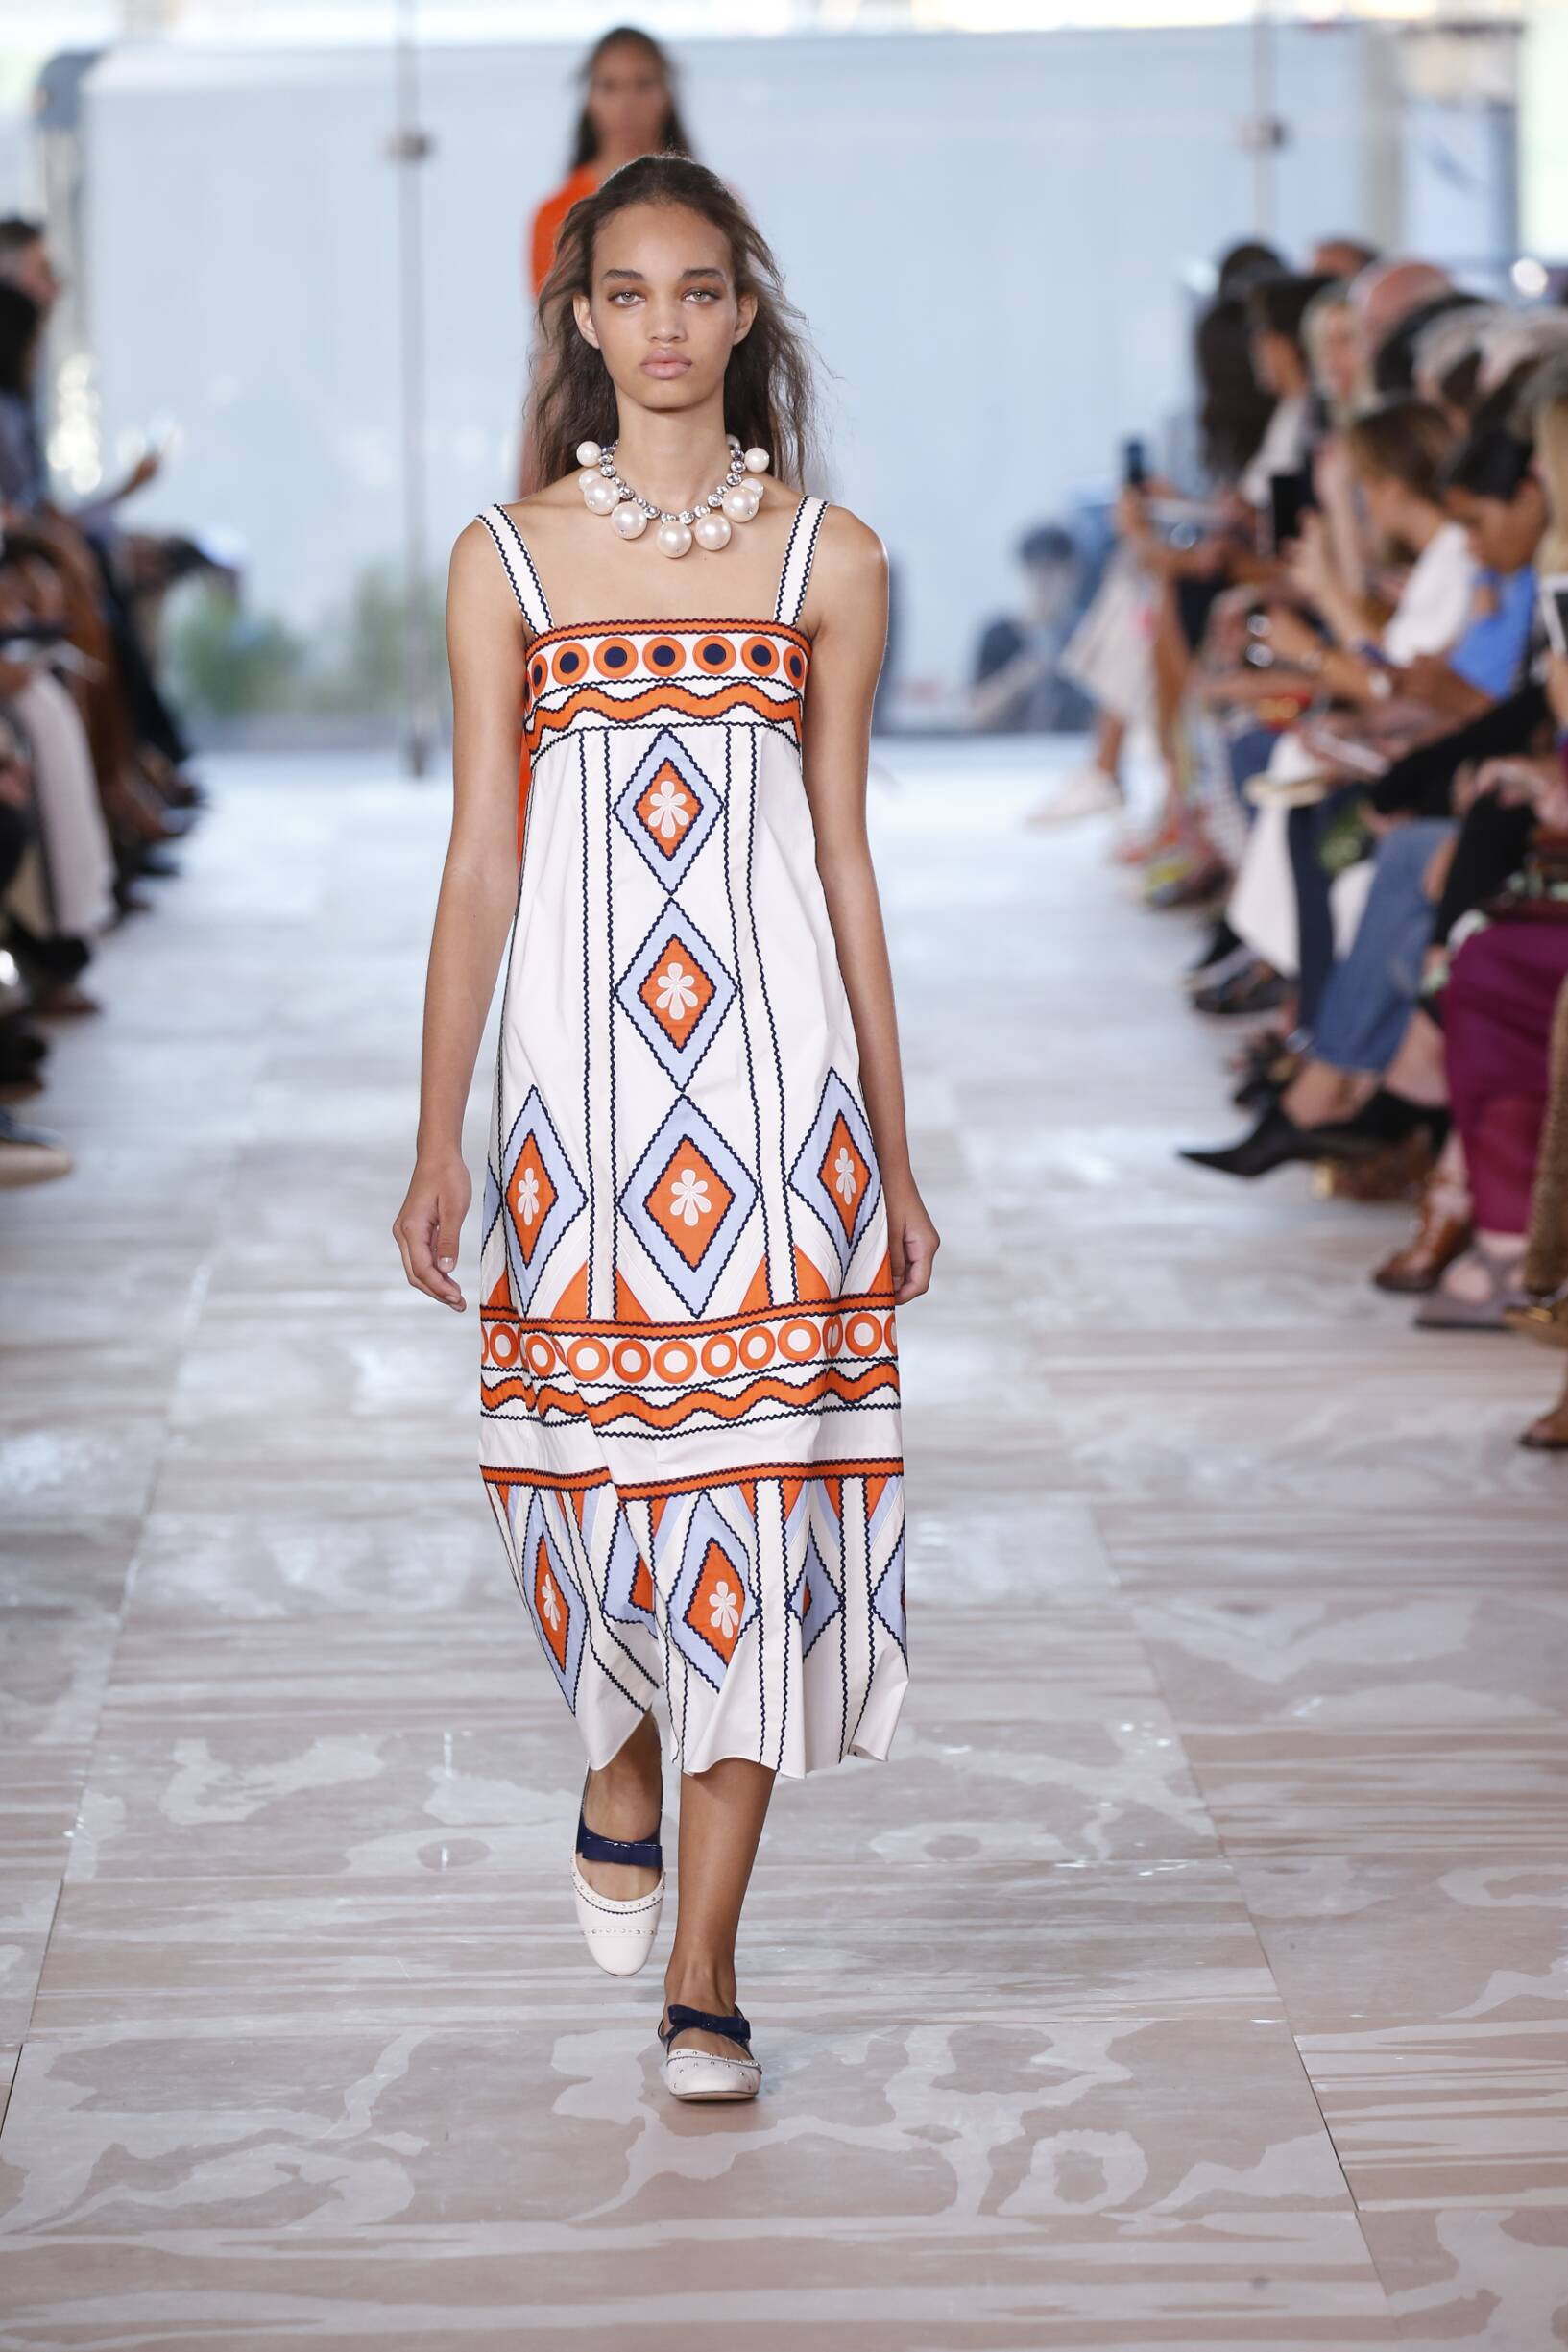 Tory Burch Women's Collection 2017